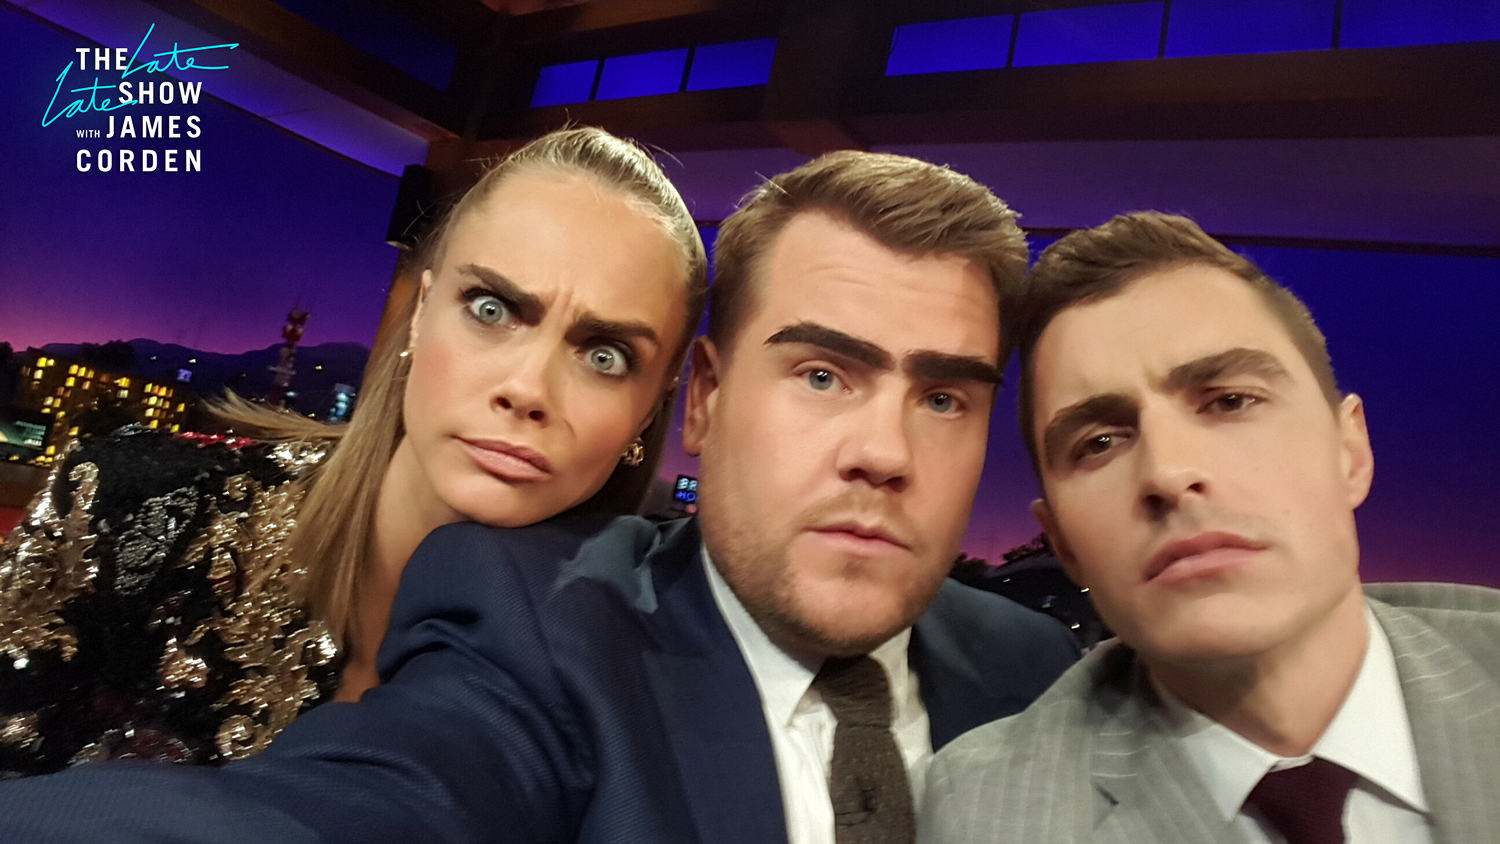 Cara Delevingne and Dave Franco